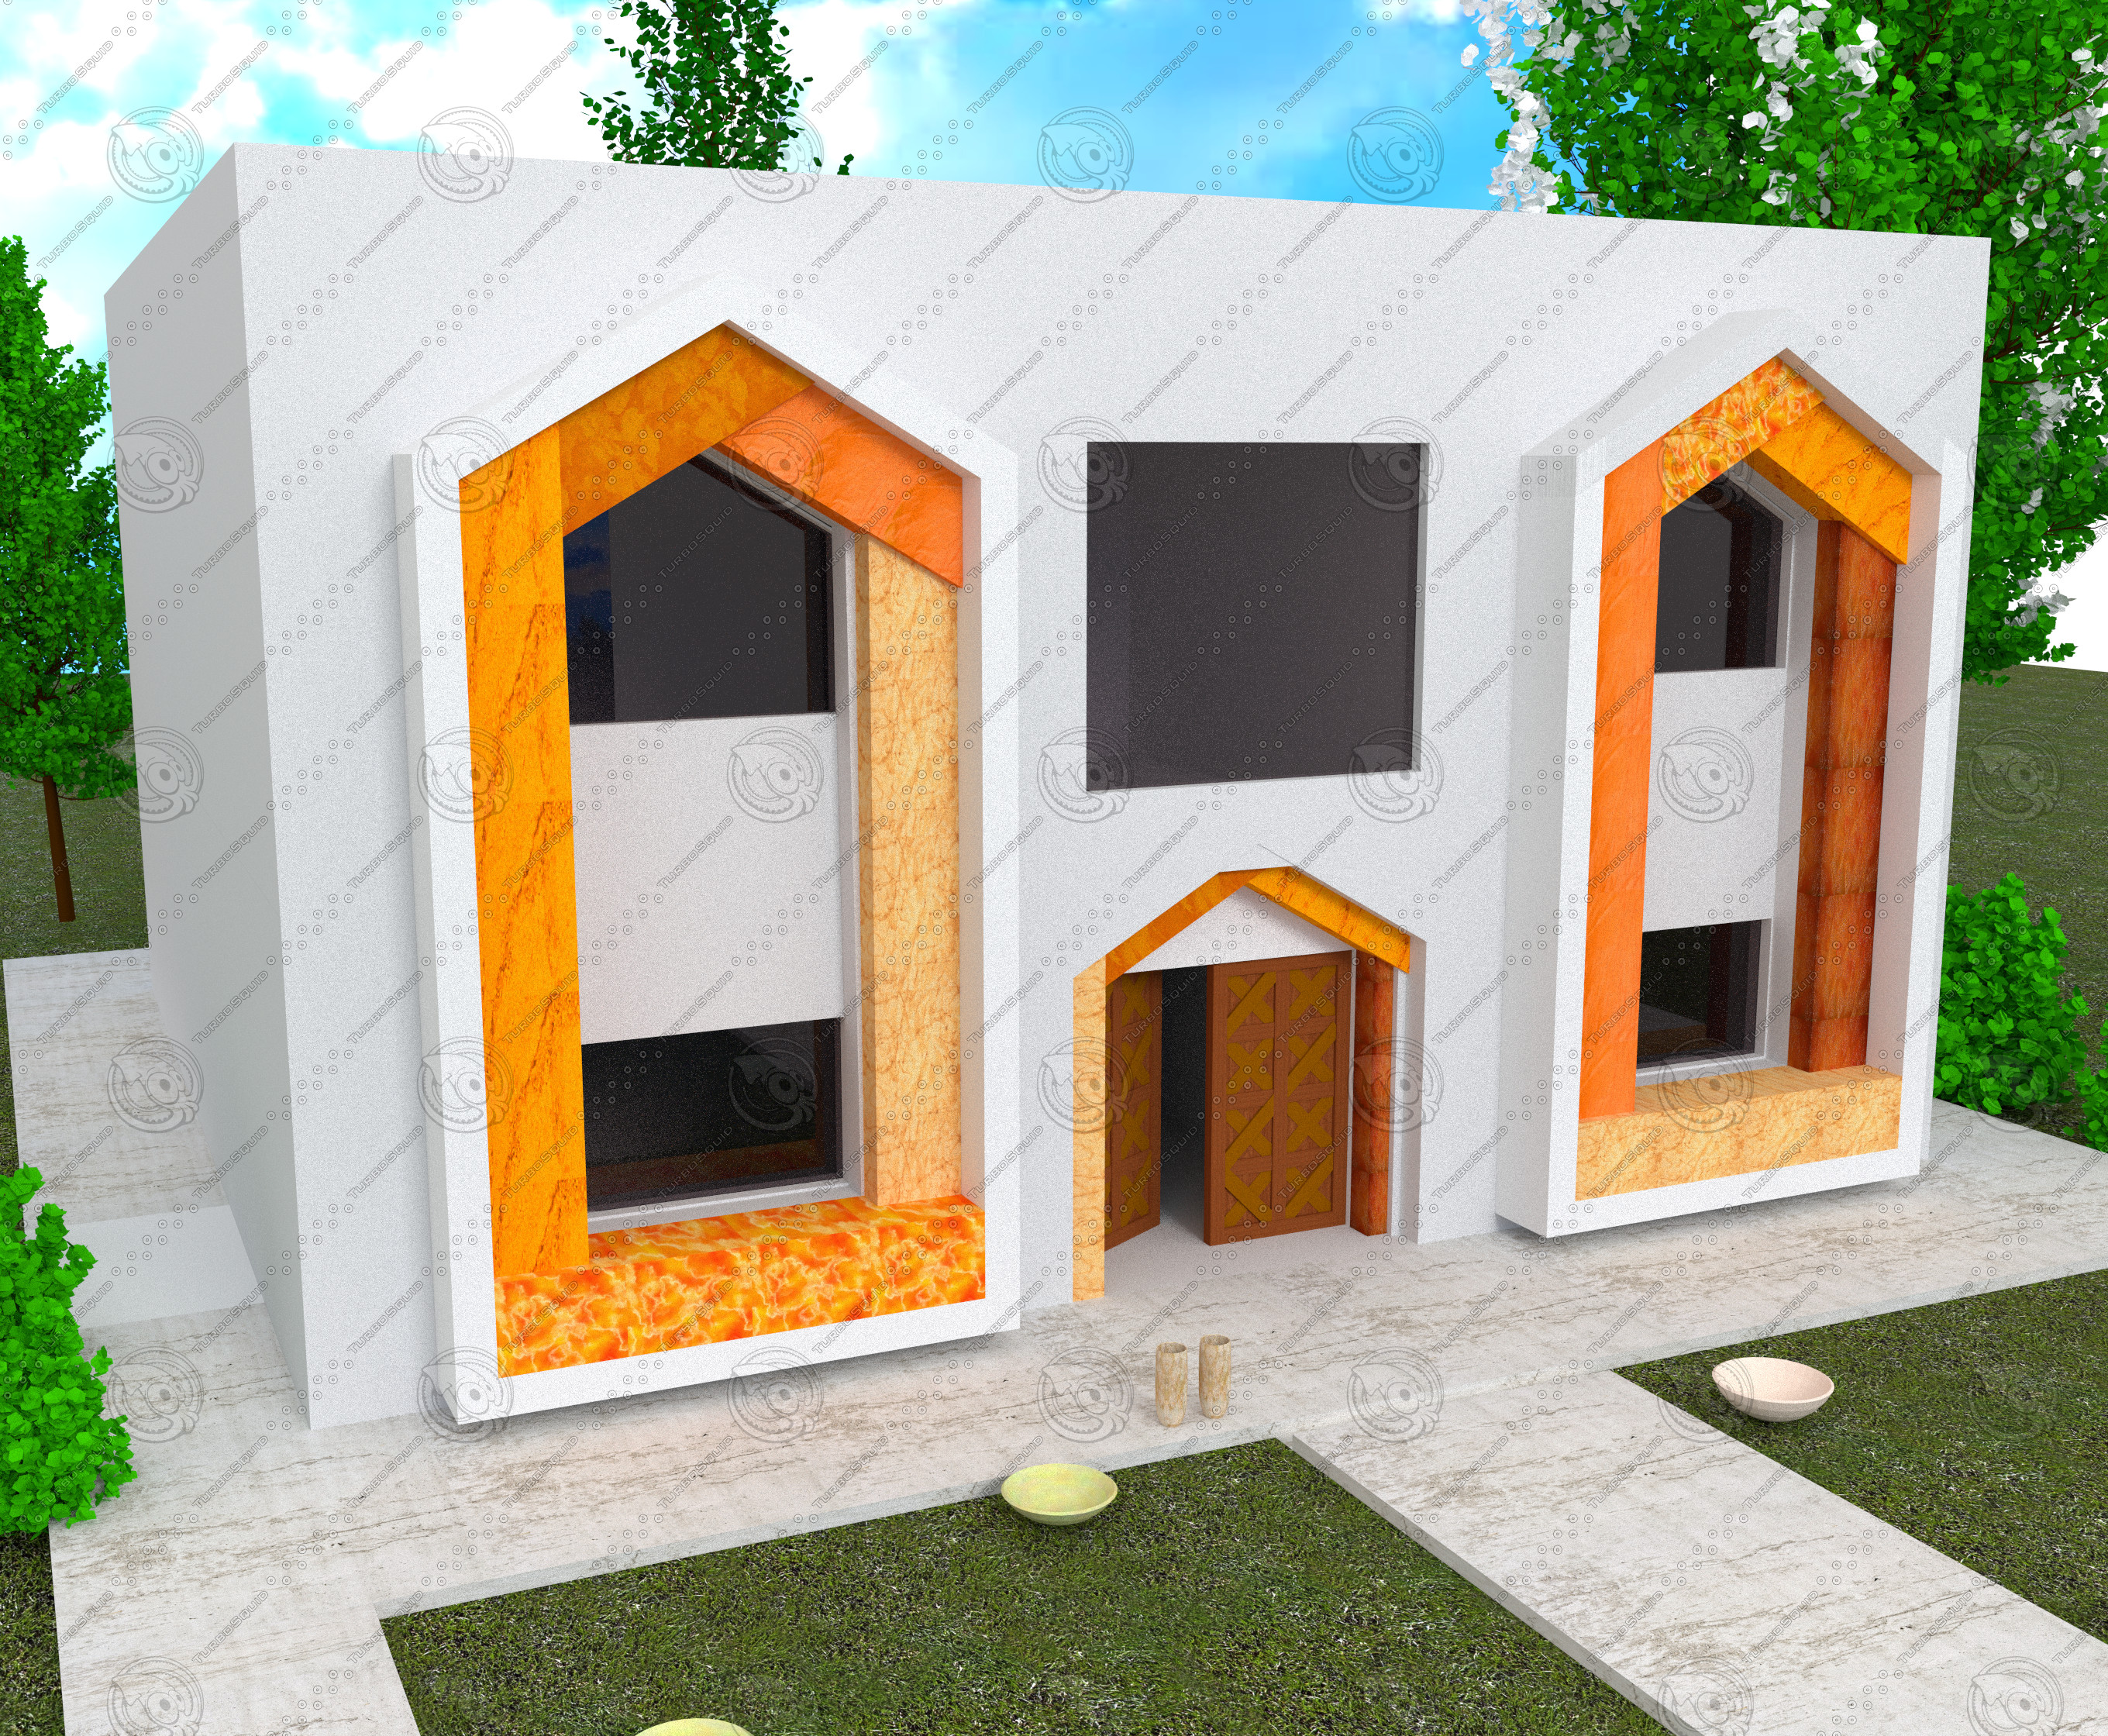 3d chic home exterior image 1.png